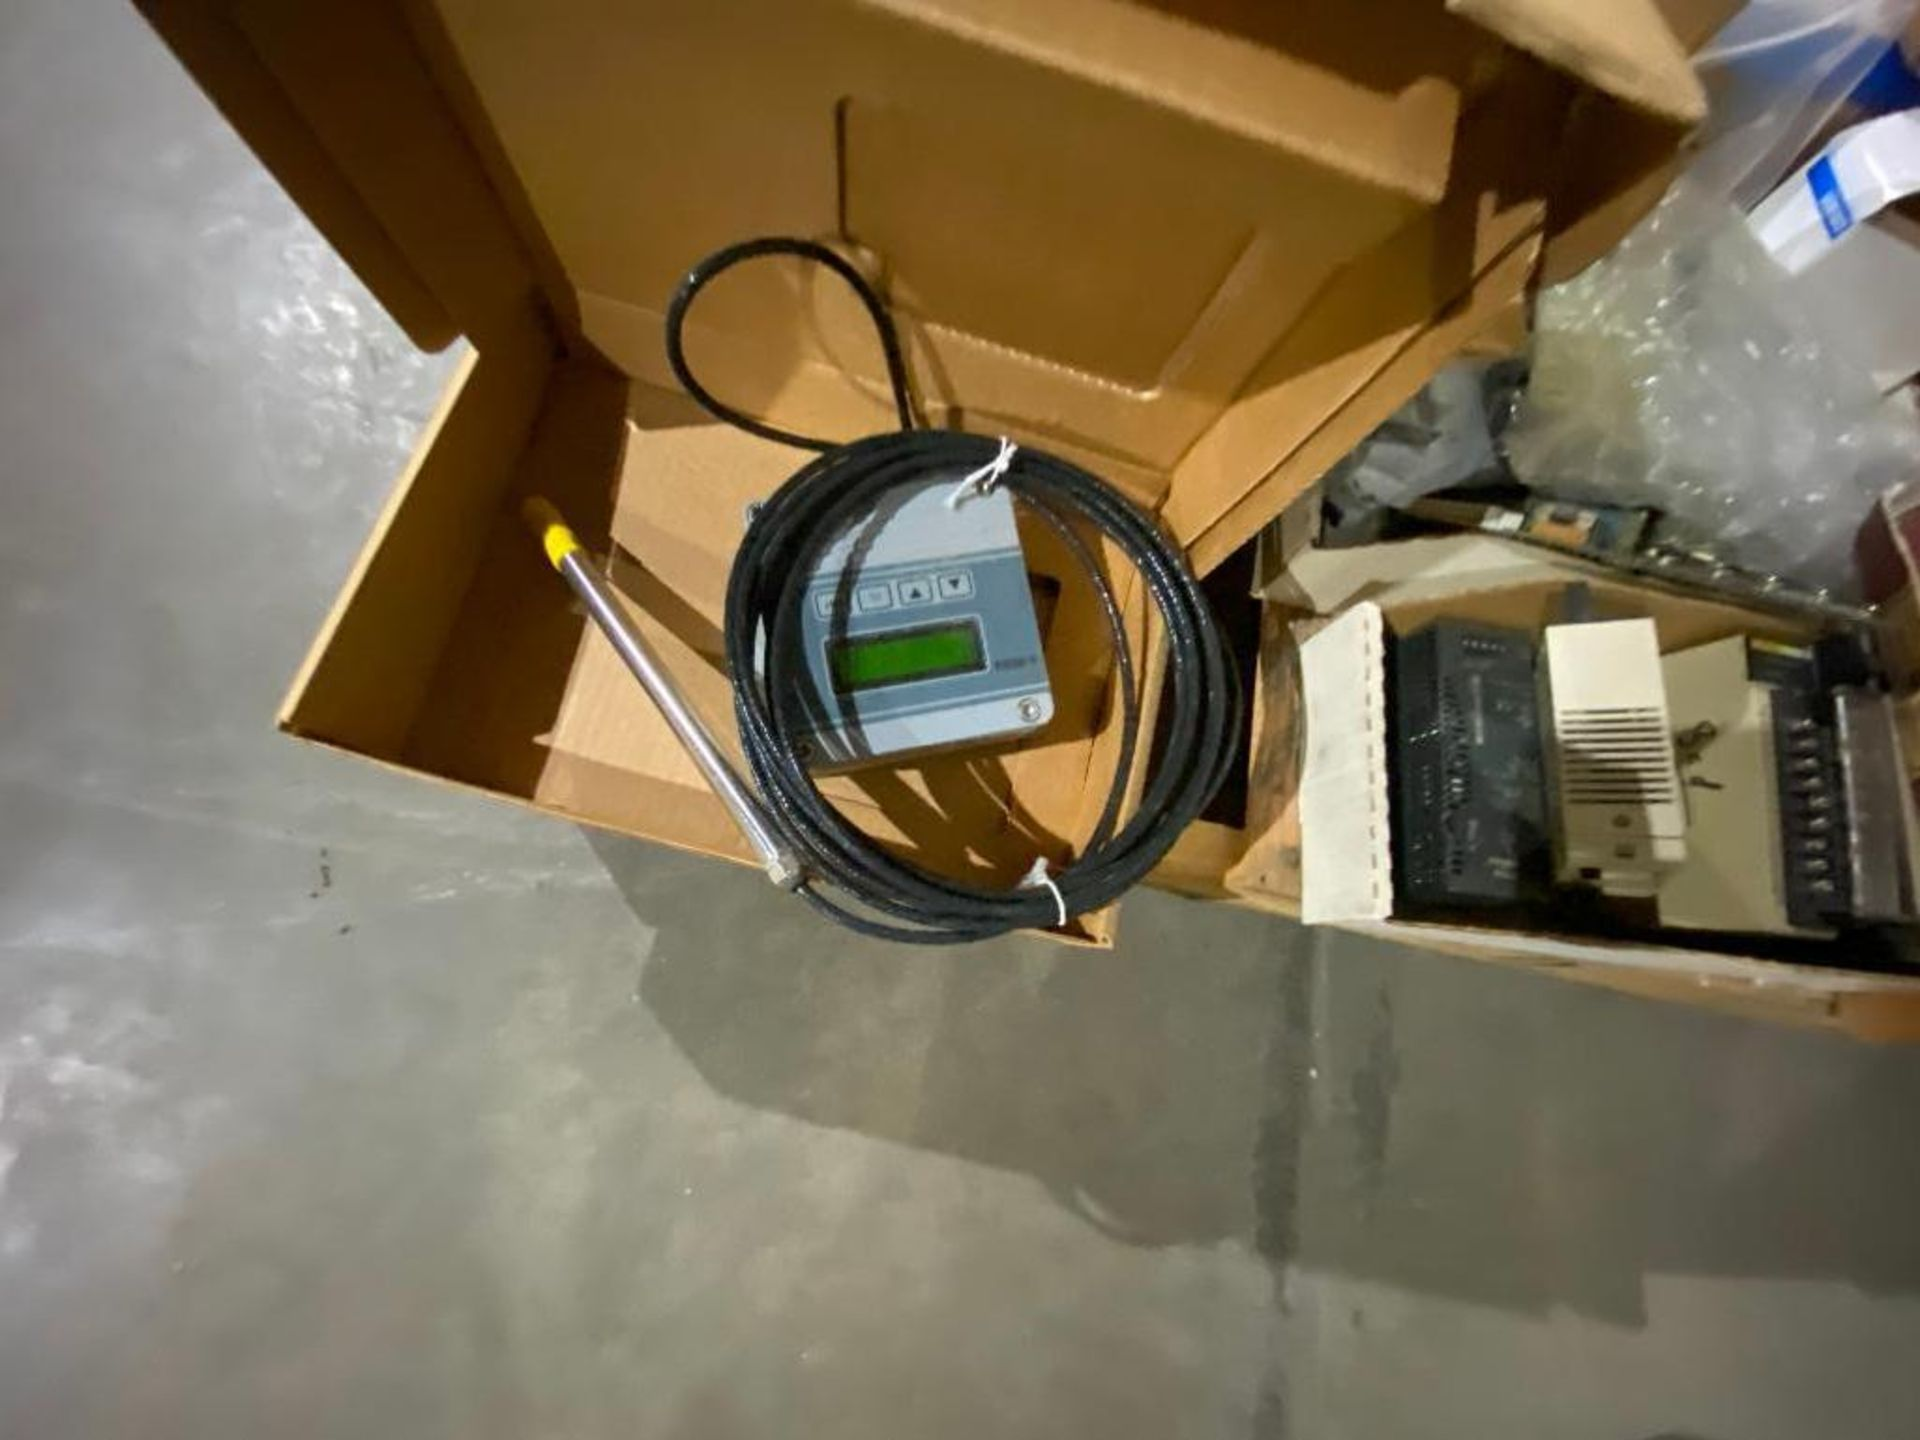 pallet of ABB parts, controllers, cabinets, and control boards - Image 8 of 8